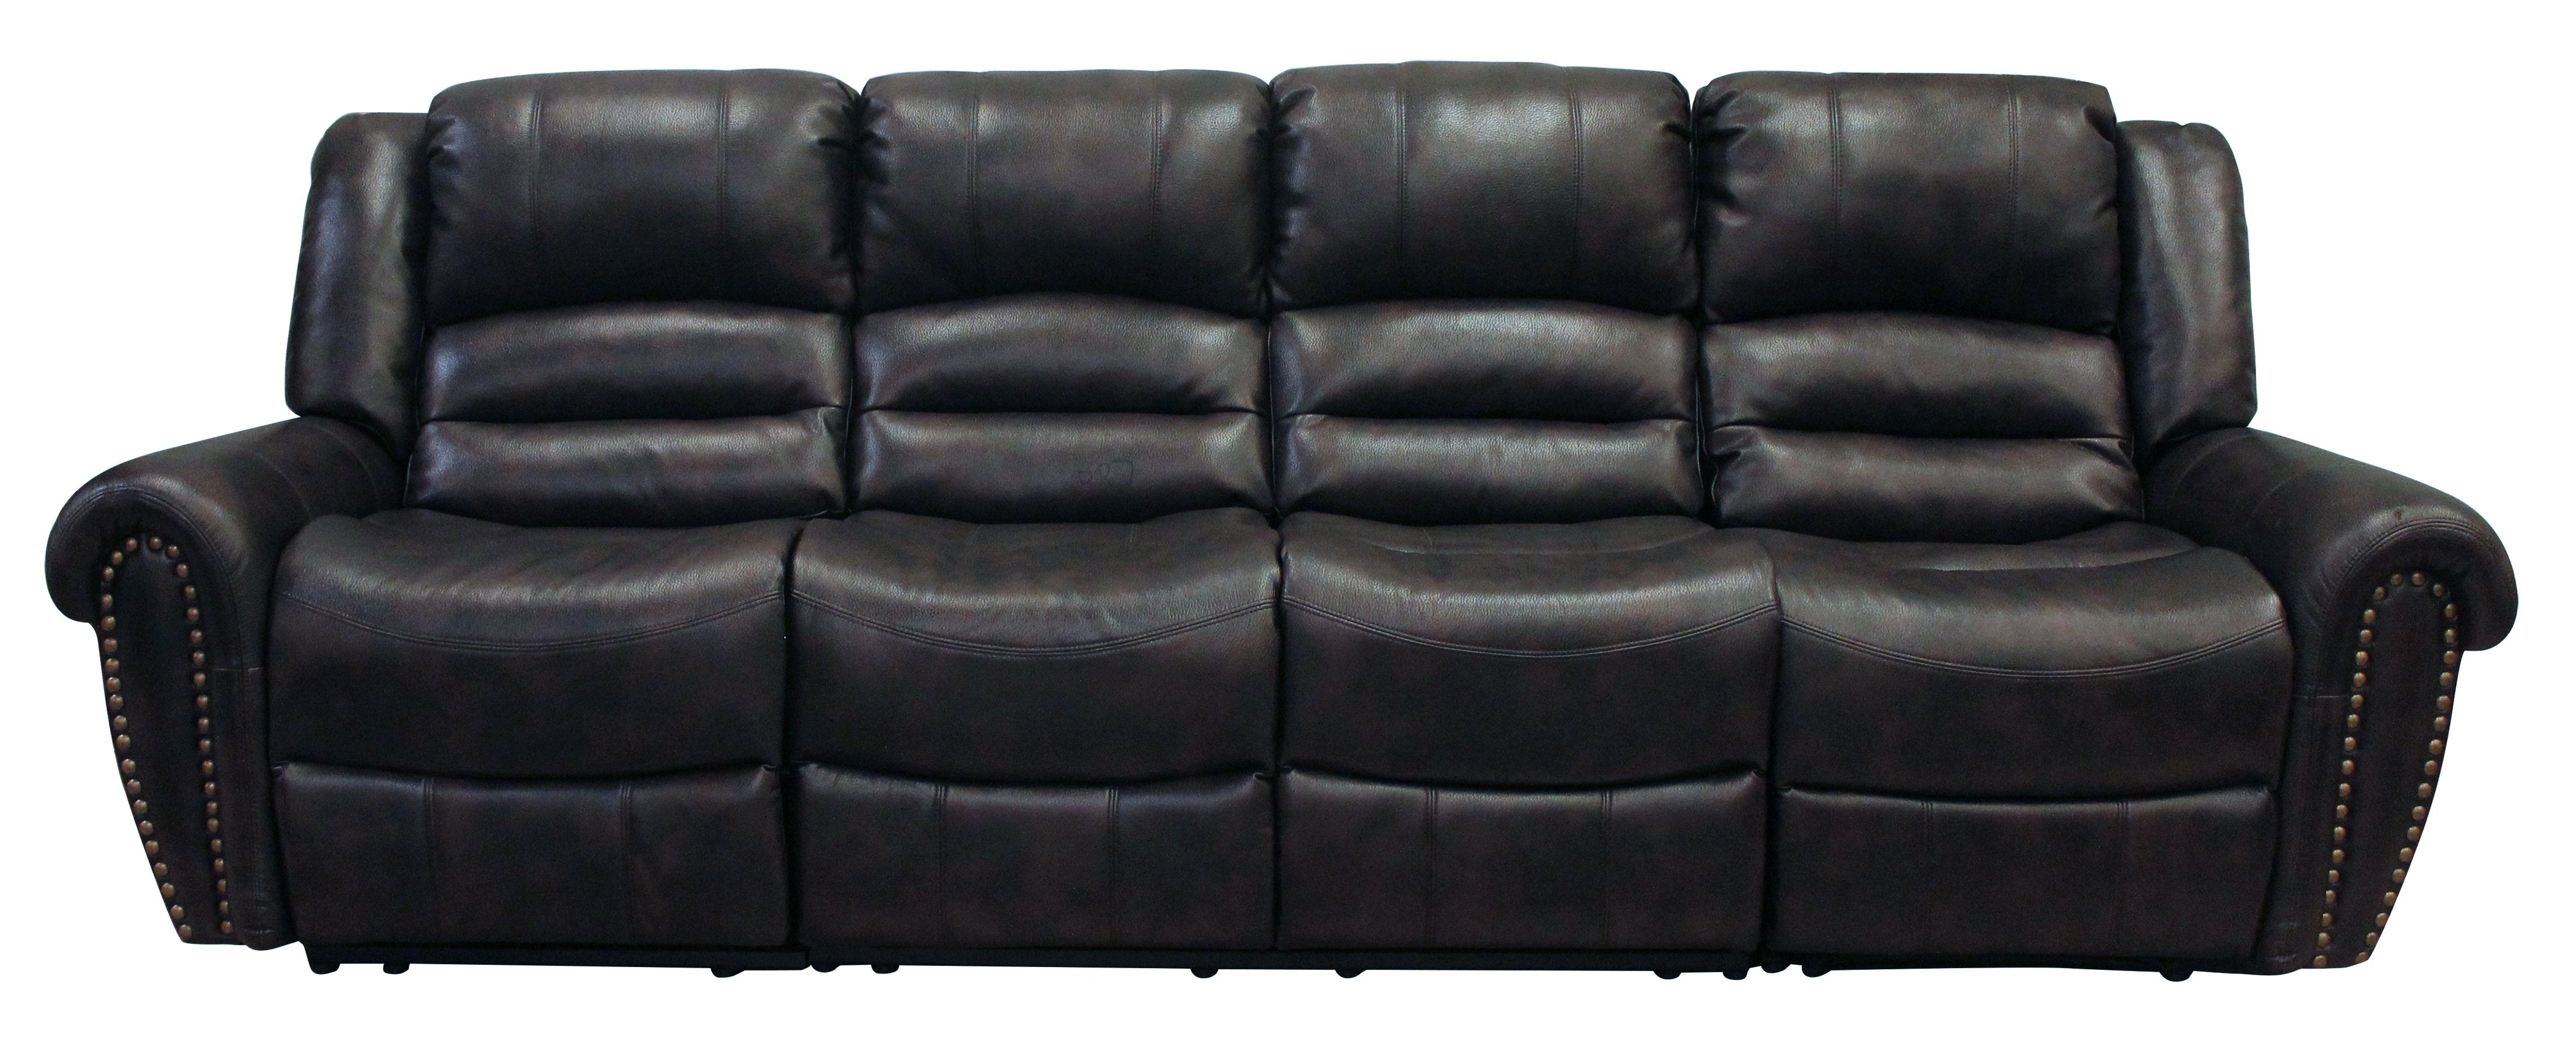 Chintaly Bonded Leather Armless Love Seat Reclining